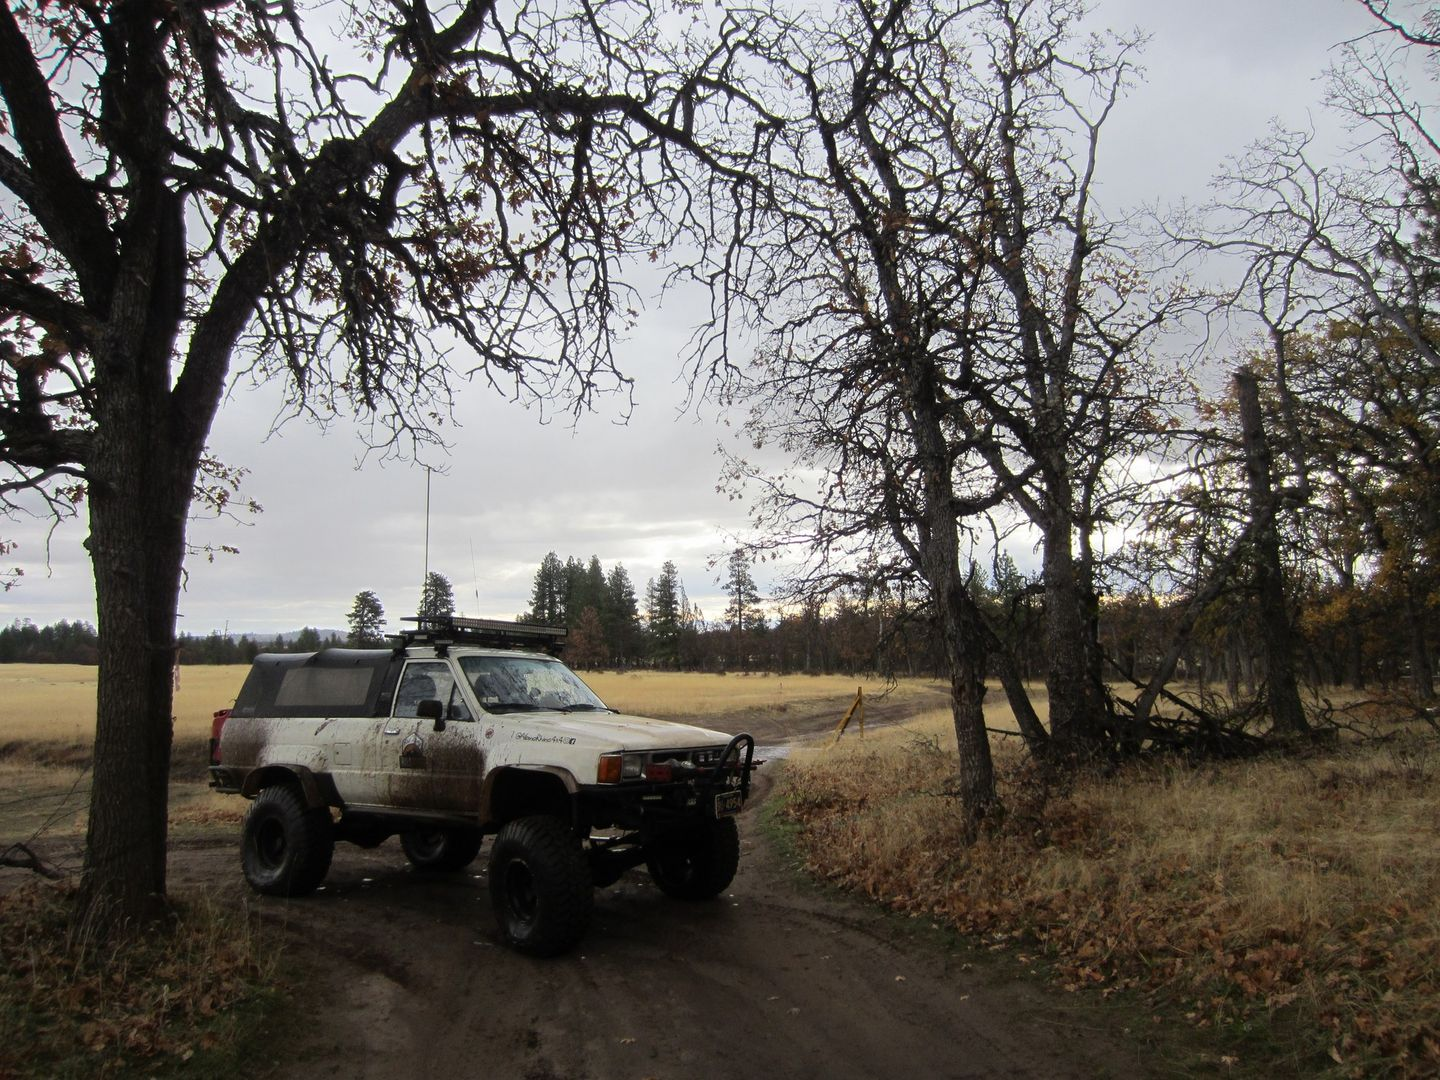 Barlow Trail - Waypoint 5: Turn Right - End of Smock Road